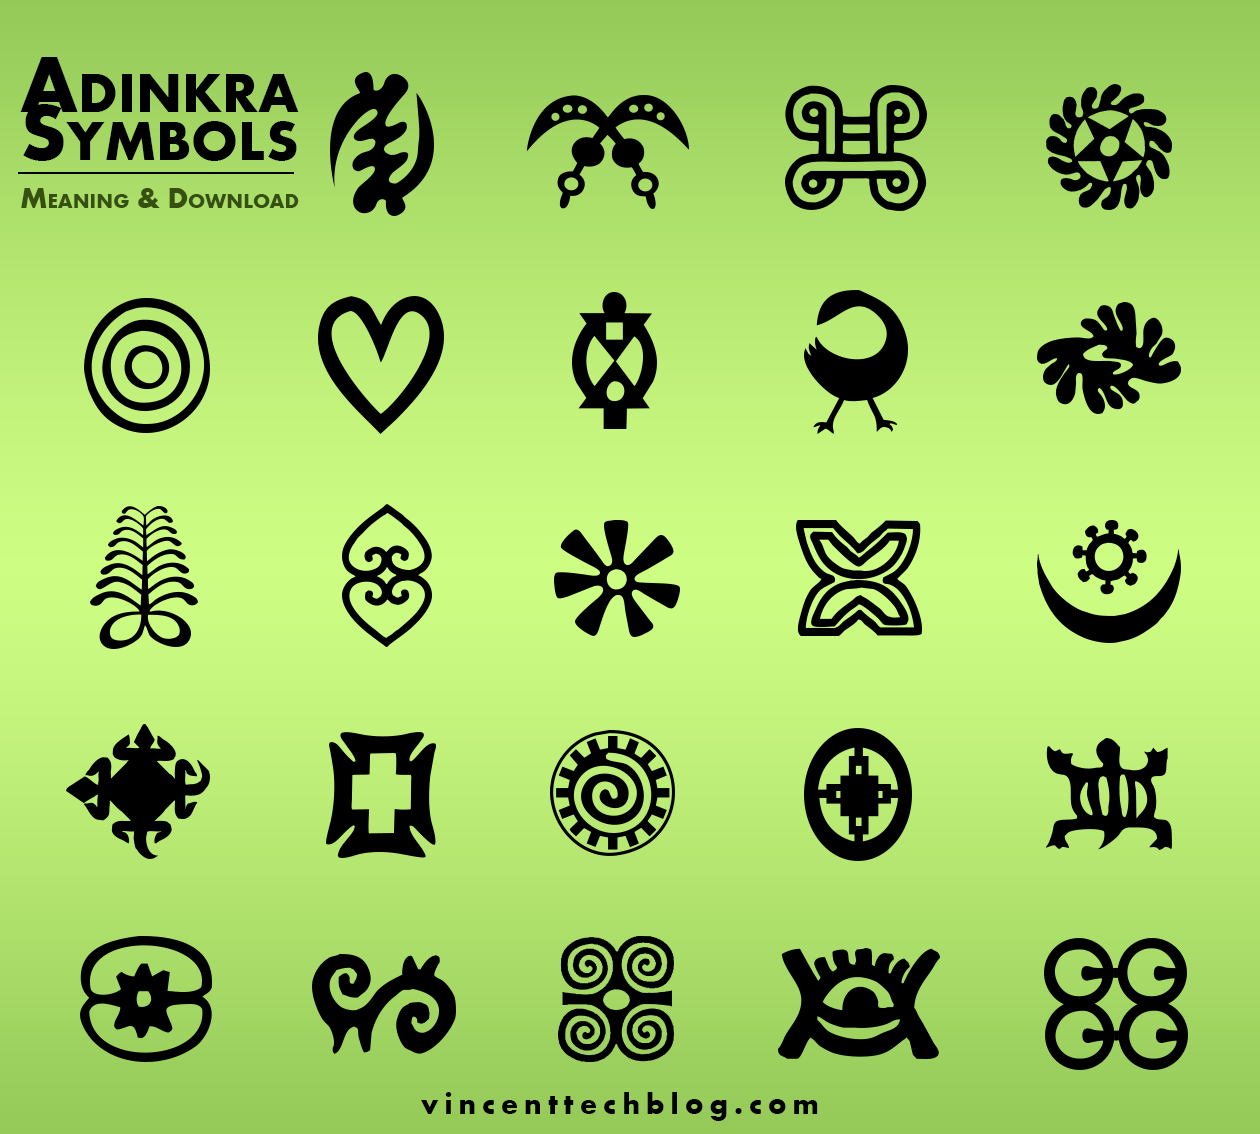 Adinkra symbols free download ghanaian symbols brushes shapes biocorpaavc Image collections